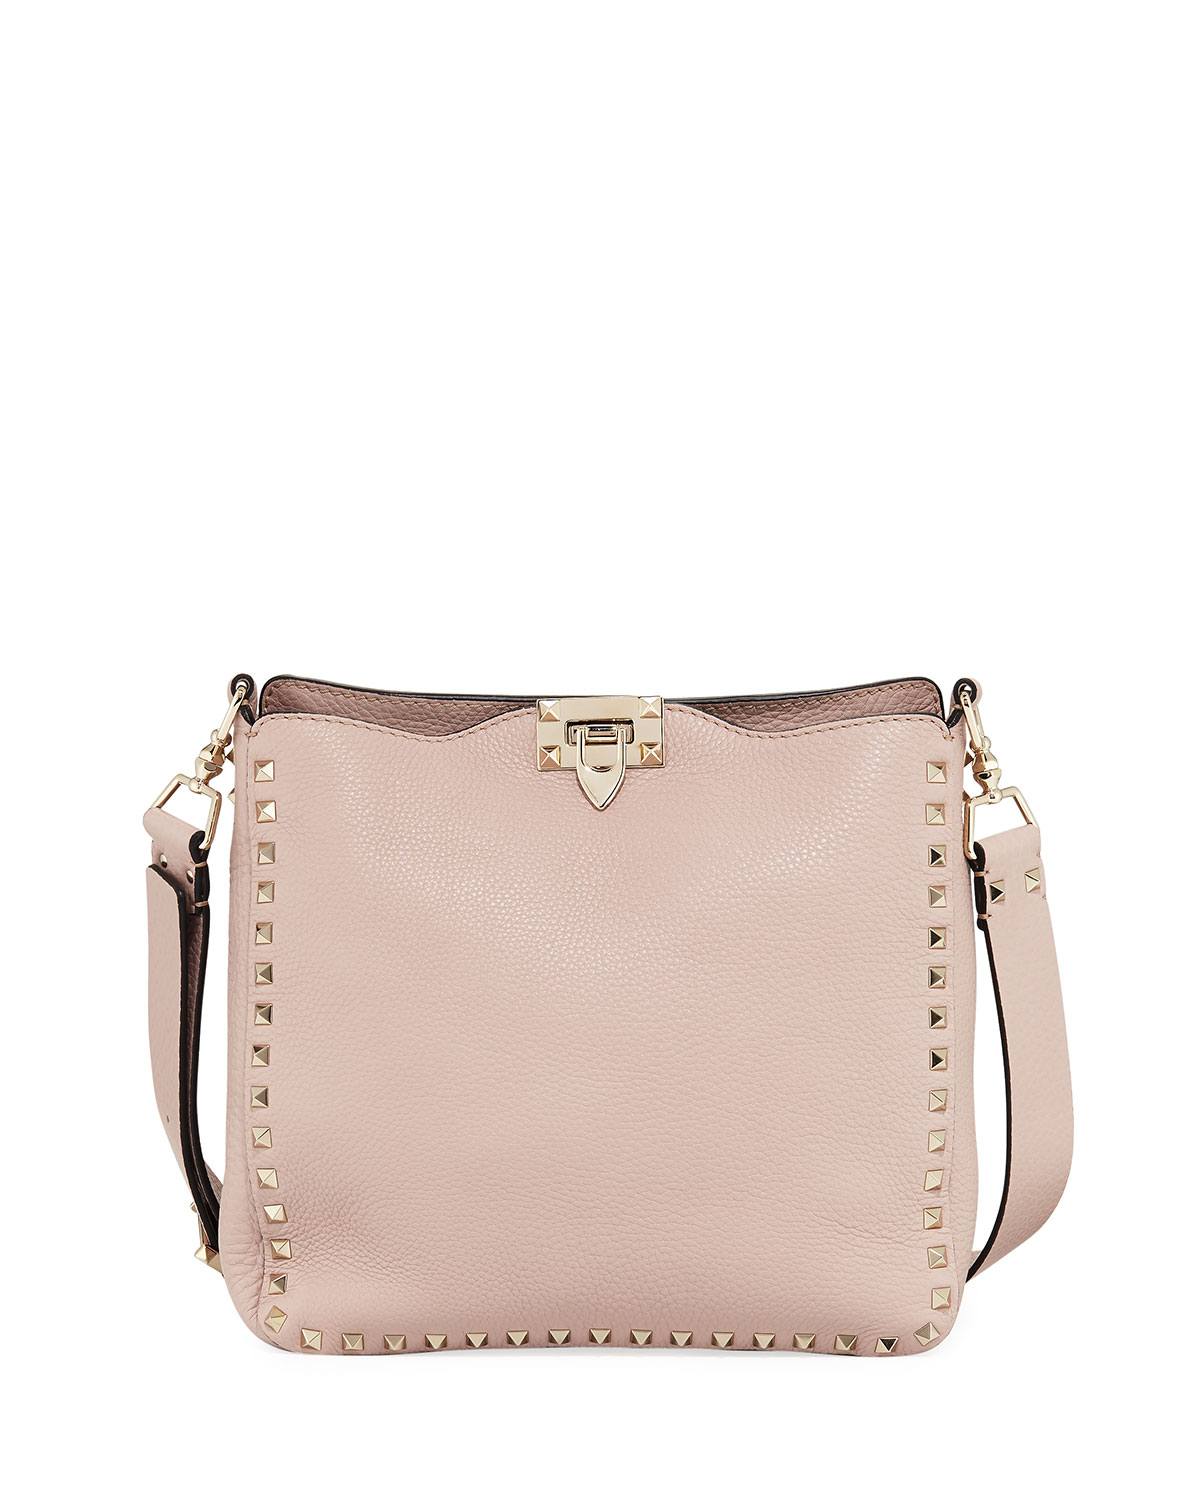 898f496bf9 Valentino Garavani Rockstud Small Leather Hobo Bag